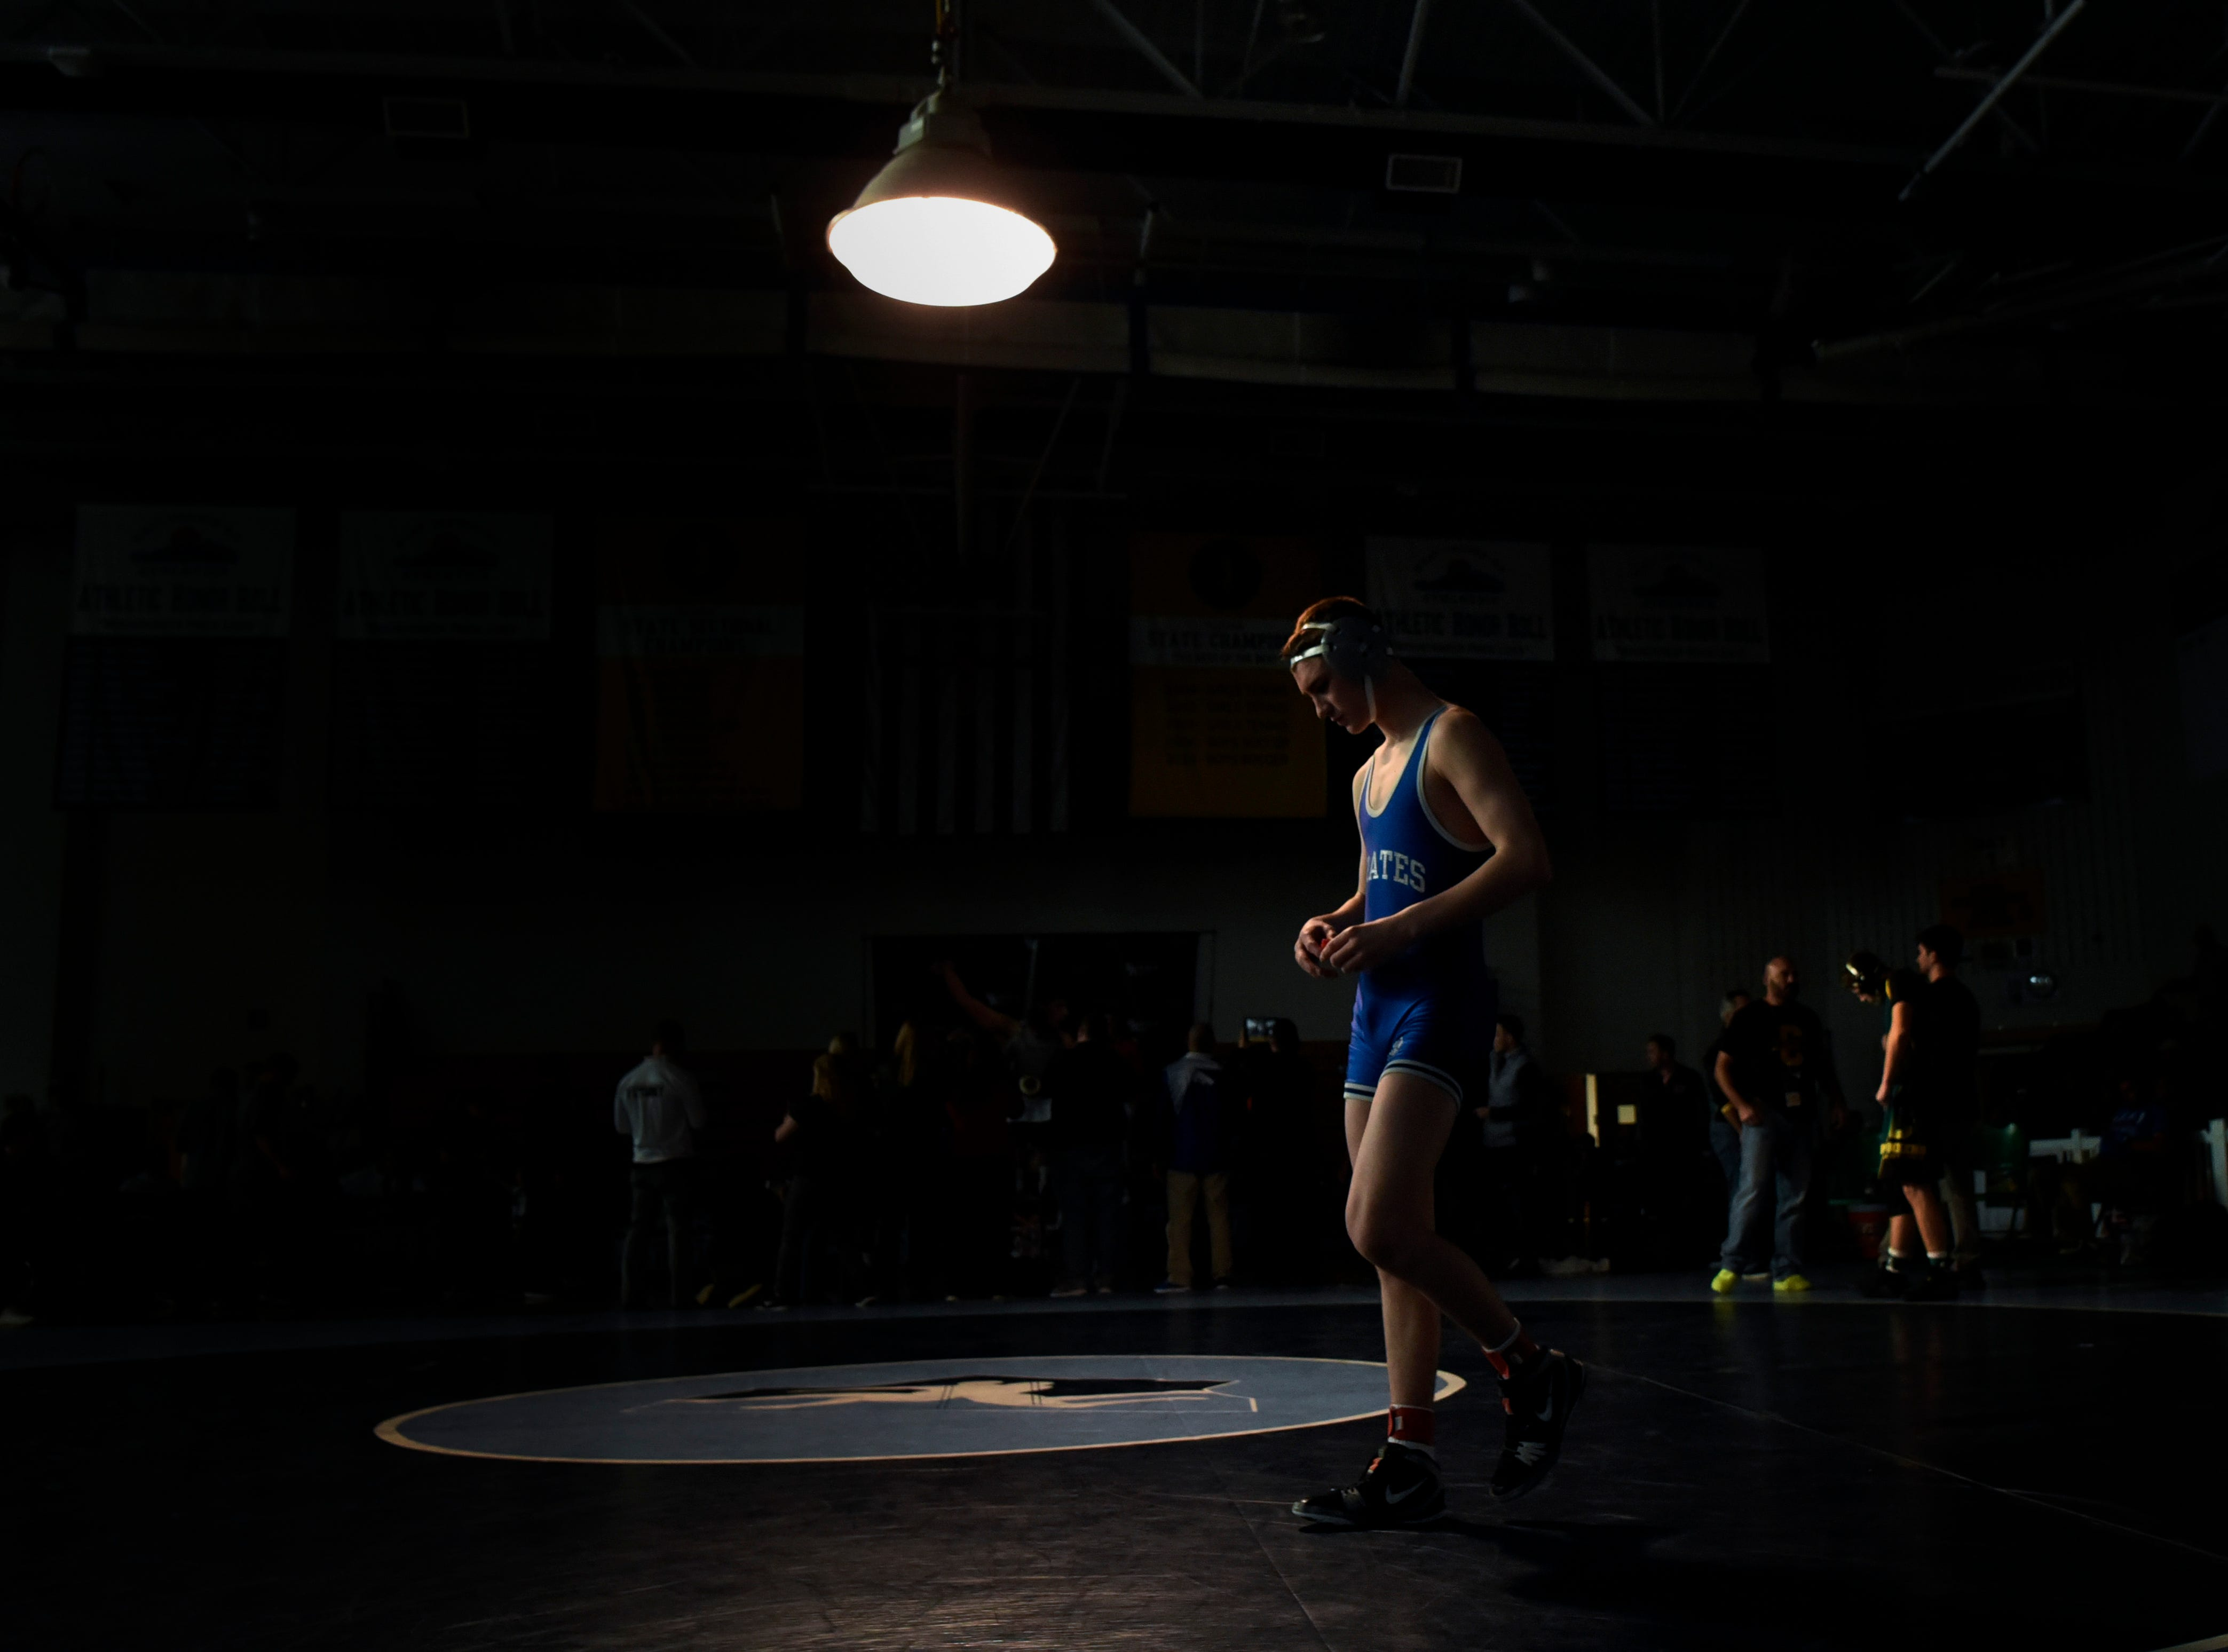 Jack Wilt of Seton Hall Prep enters the mat before his152-pound final match during the Sam Cali Battle for the Belt on Sunday, Jan. 6, 2019, in West Orange.